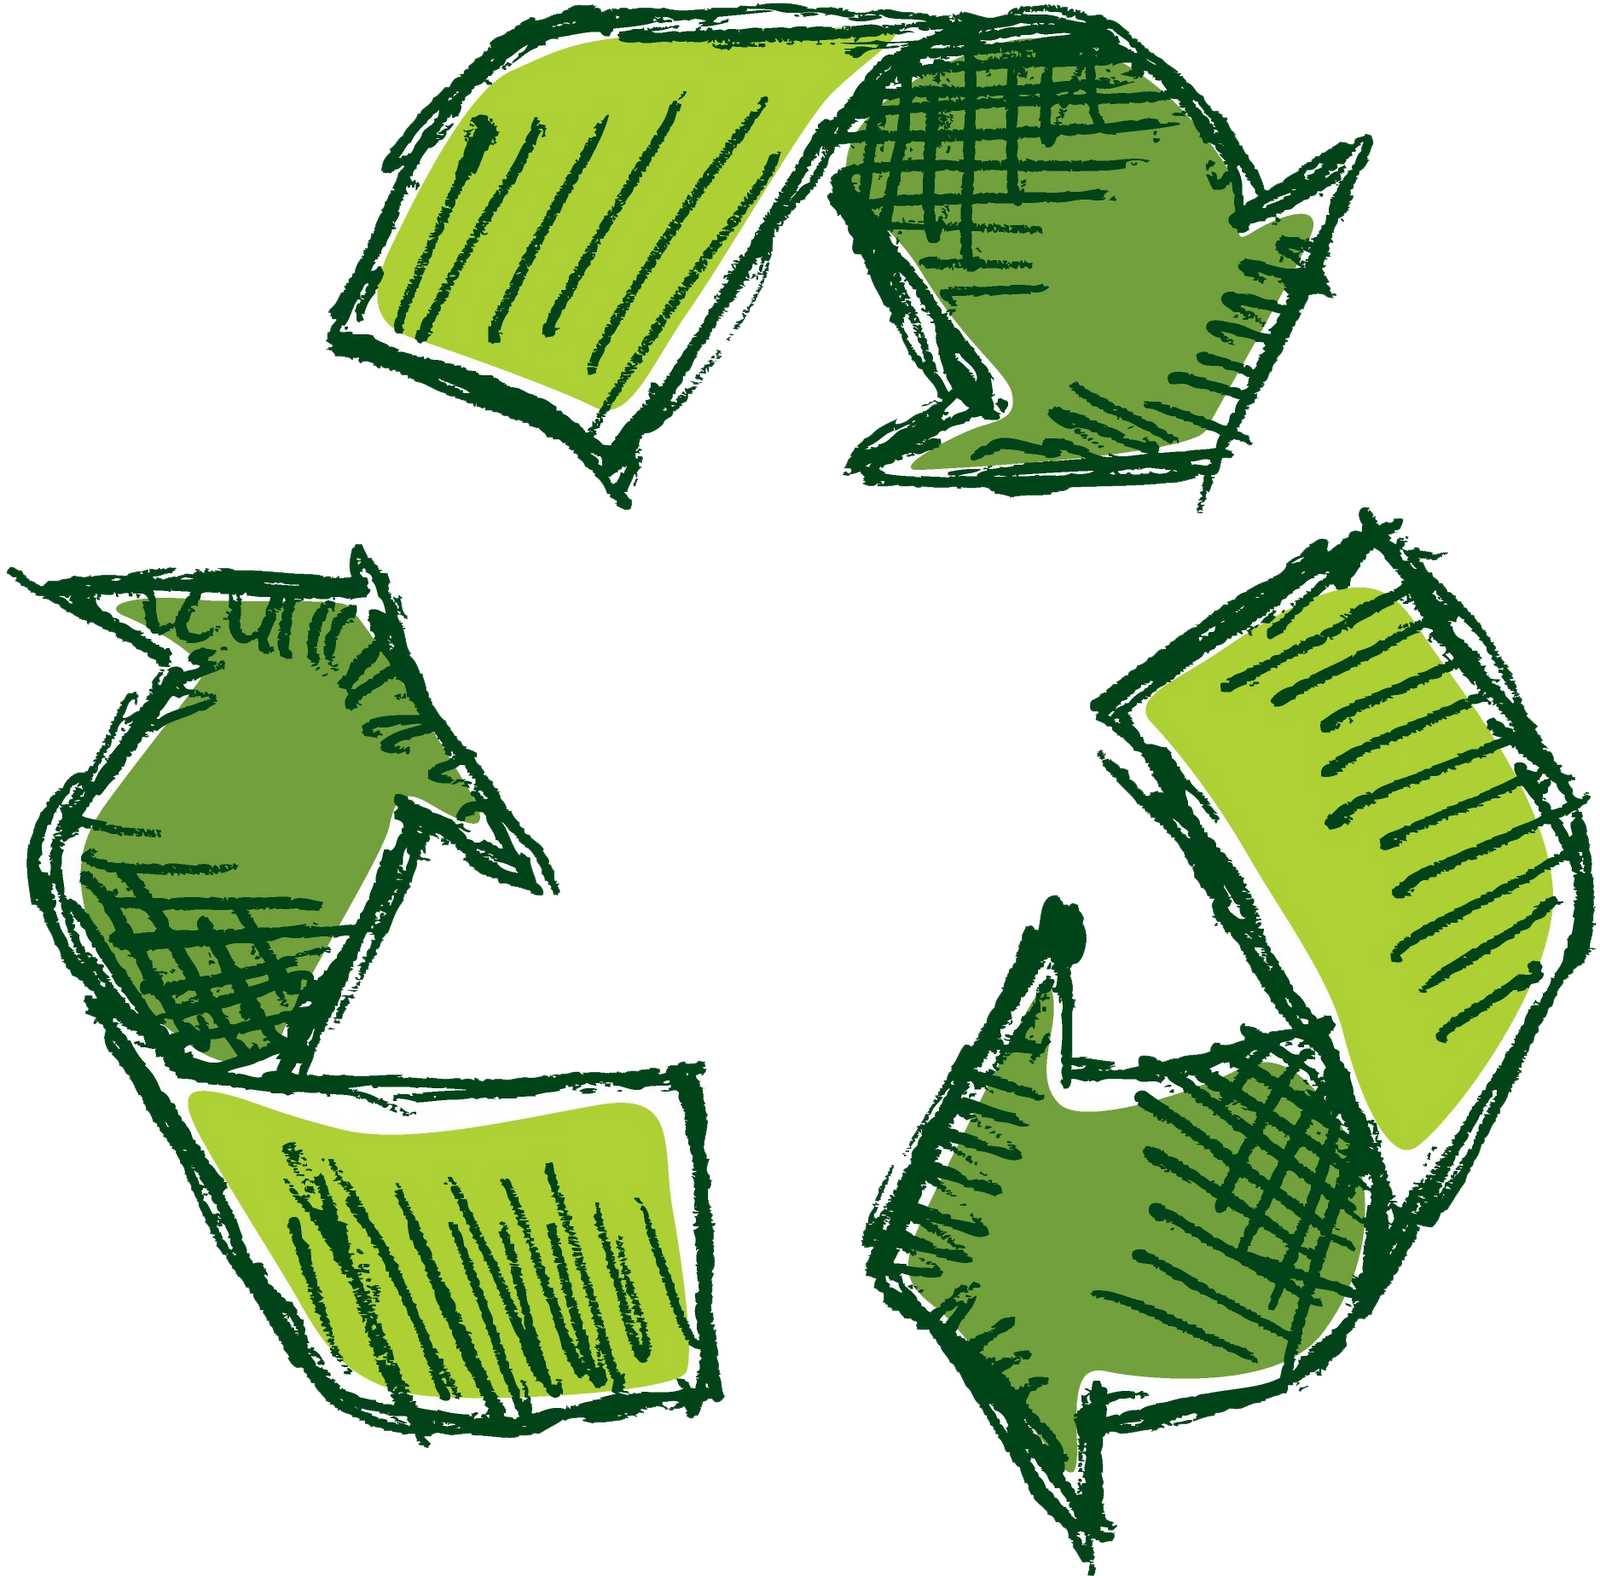 Download PNG image - Recycle Free Download Png - PNG Recycle